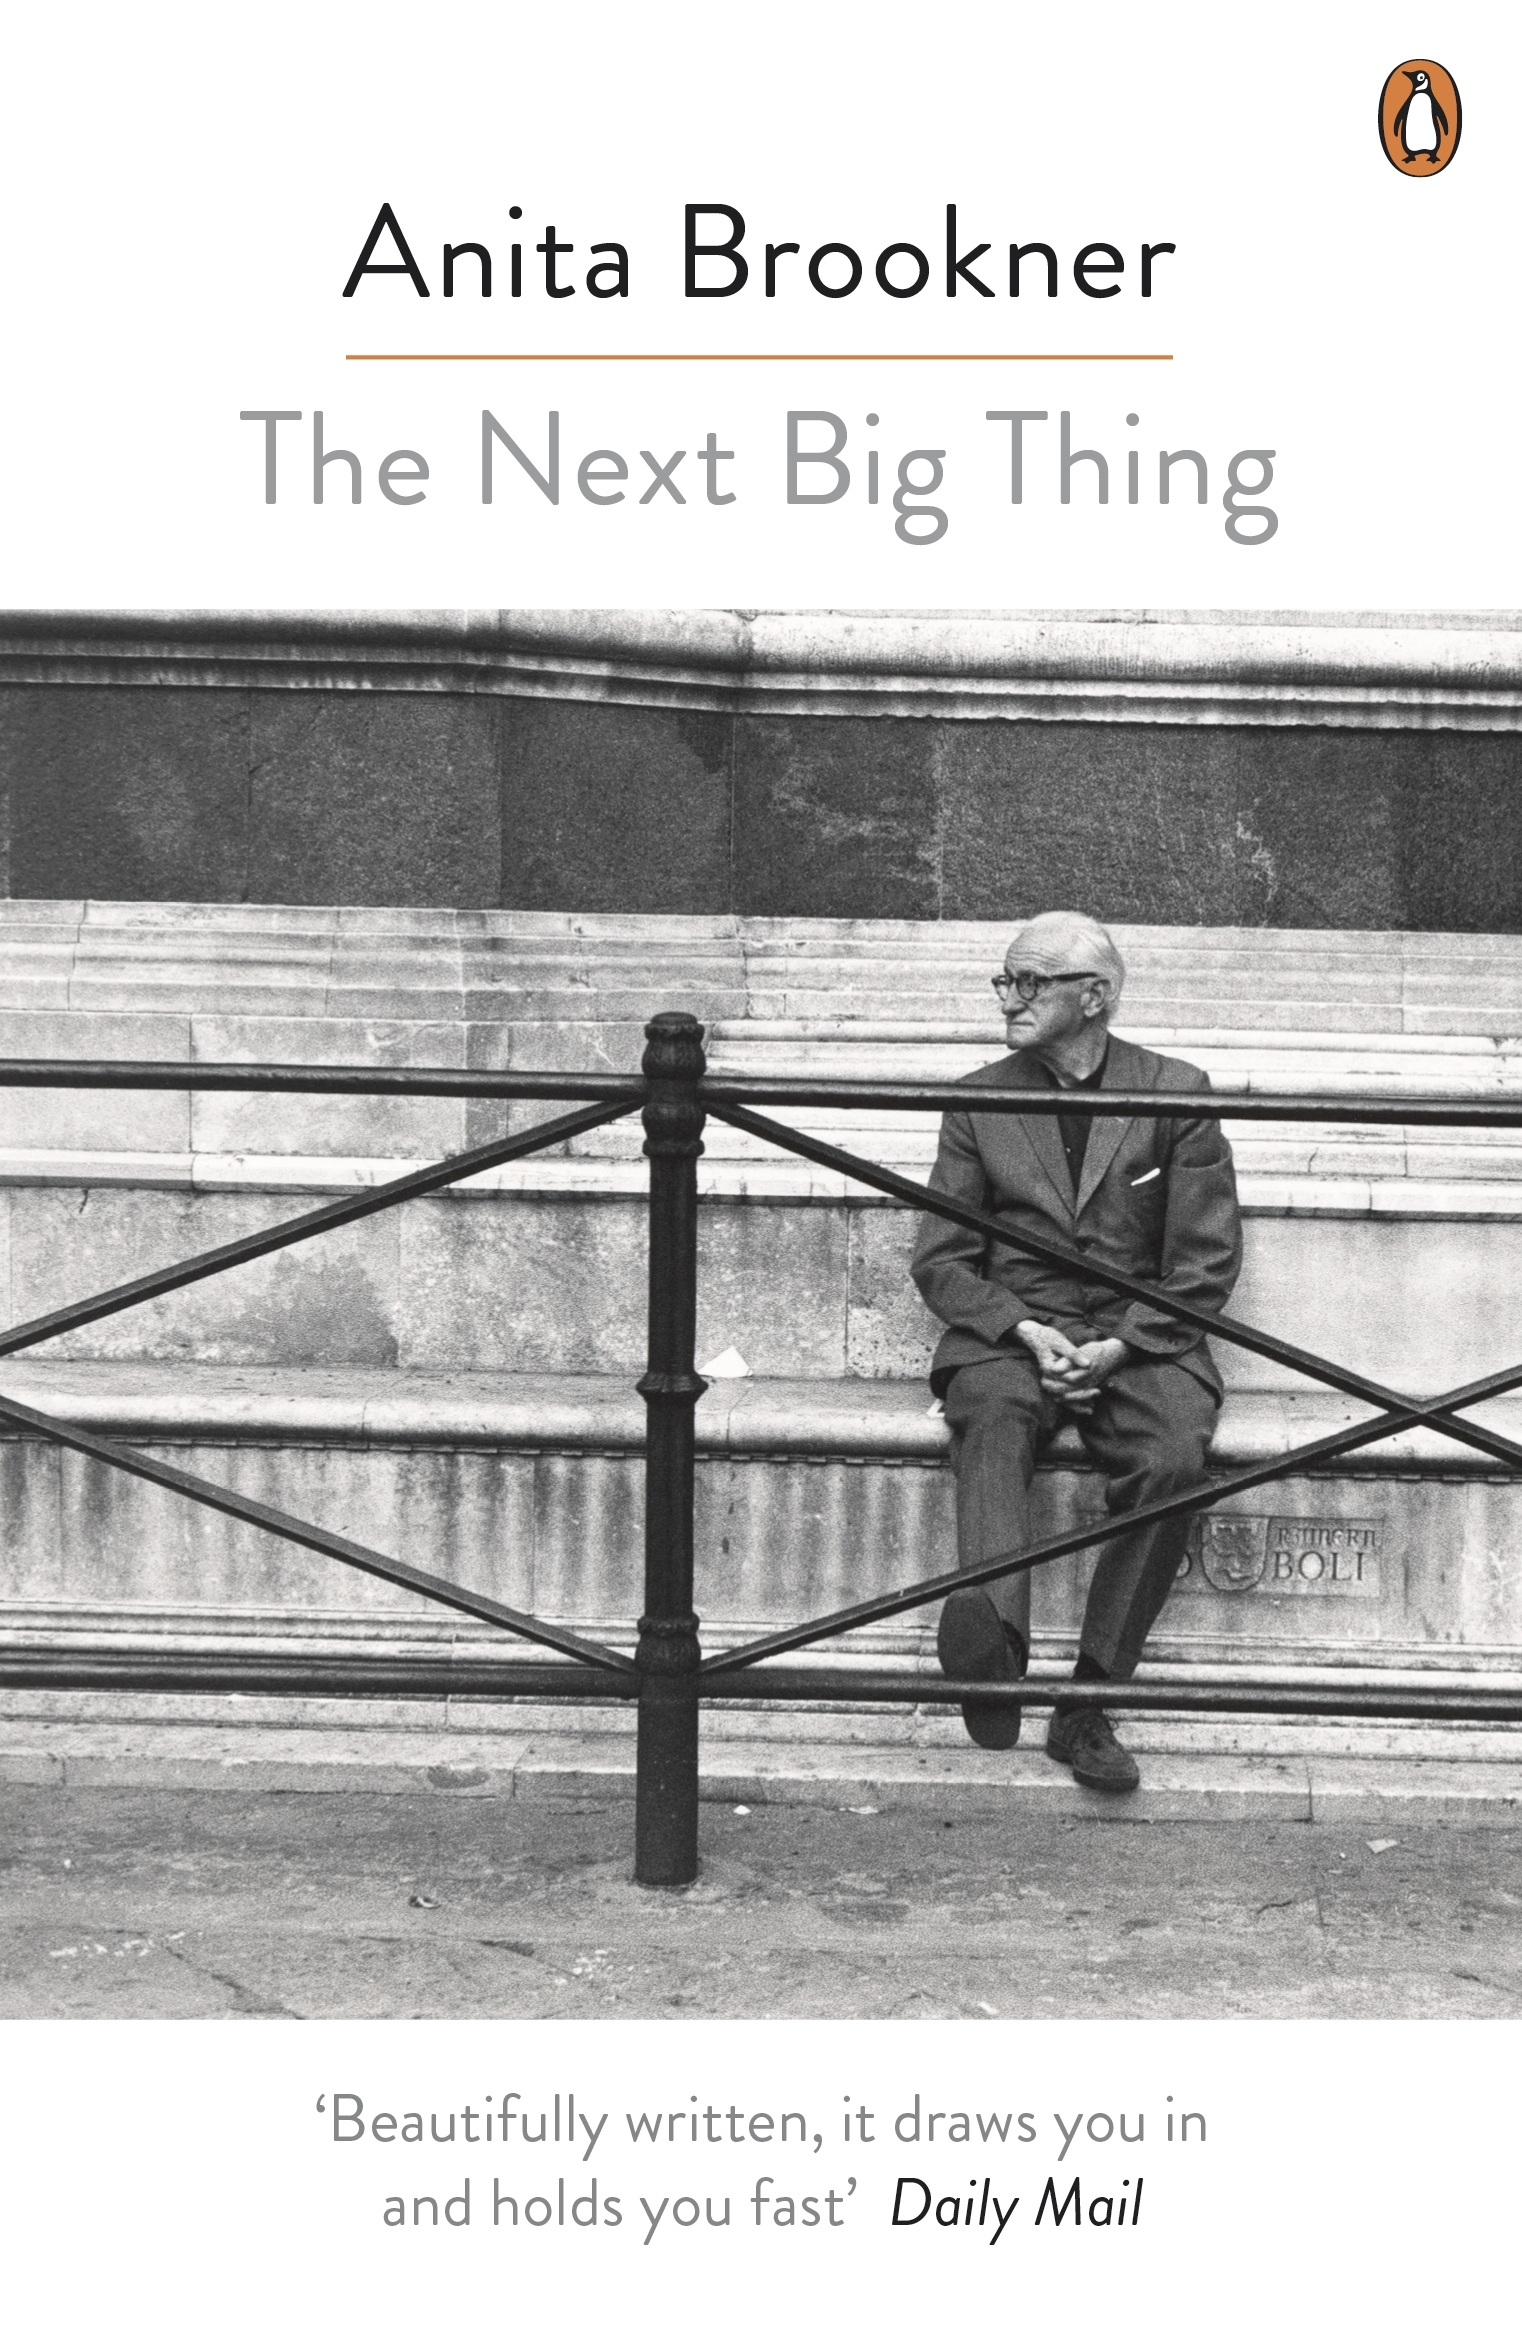 a book analysis of the next big thing by anita brookner Complete order of anita brookner books in publication order and chronological order bookseriesinordercom  the next big thing (2002) hardcover paperback kindle: the rules of engagement  writing about her experiences gave her a sense of control it was not only an exercise but also self-analysis in hotel de lac, one of the characters.